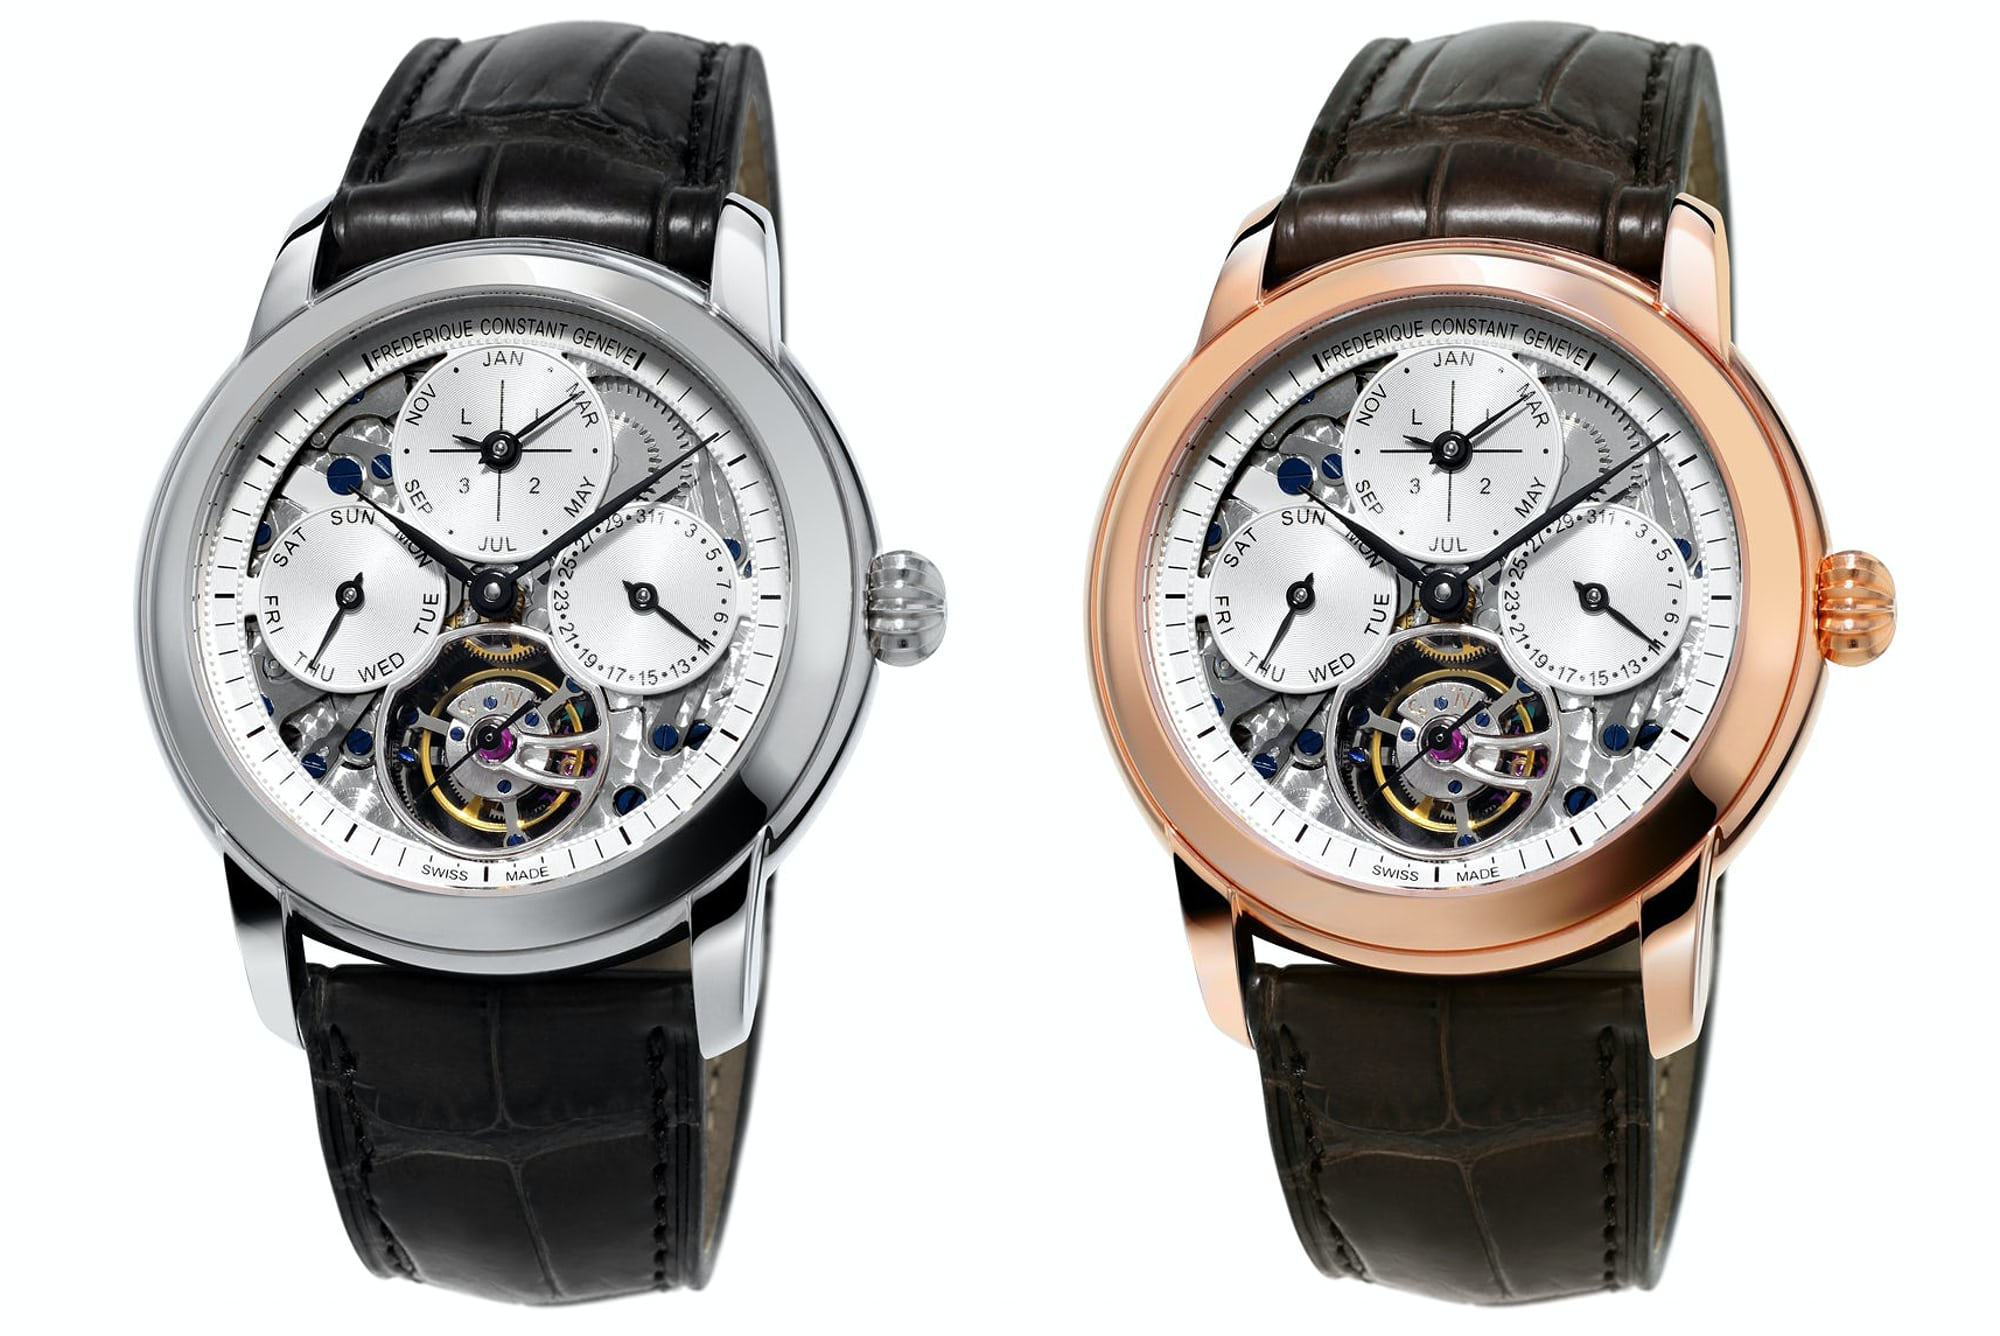 Hodinkee - Introducing: The Frederique Constant QP